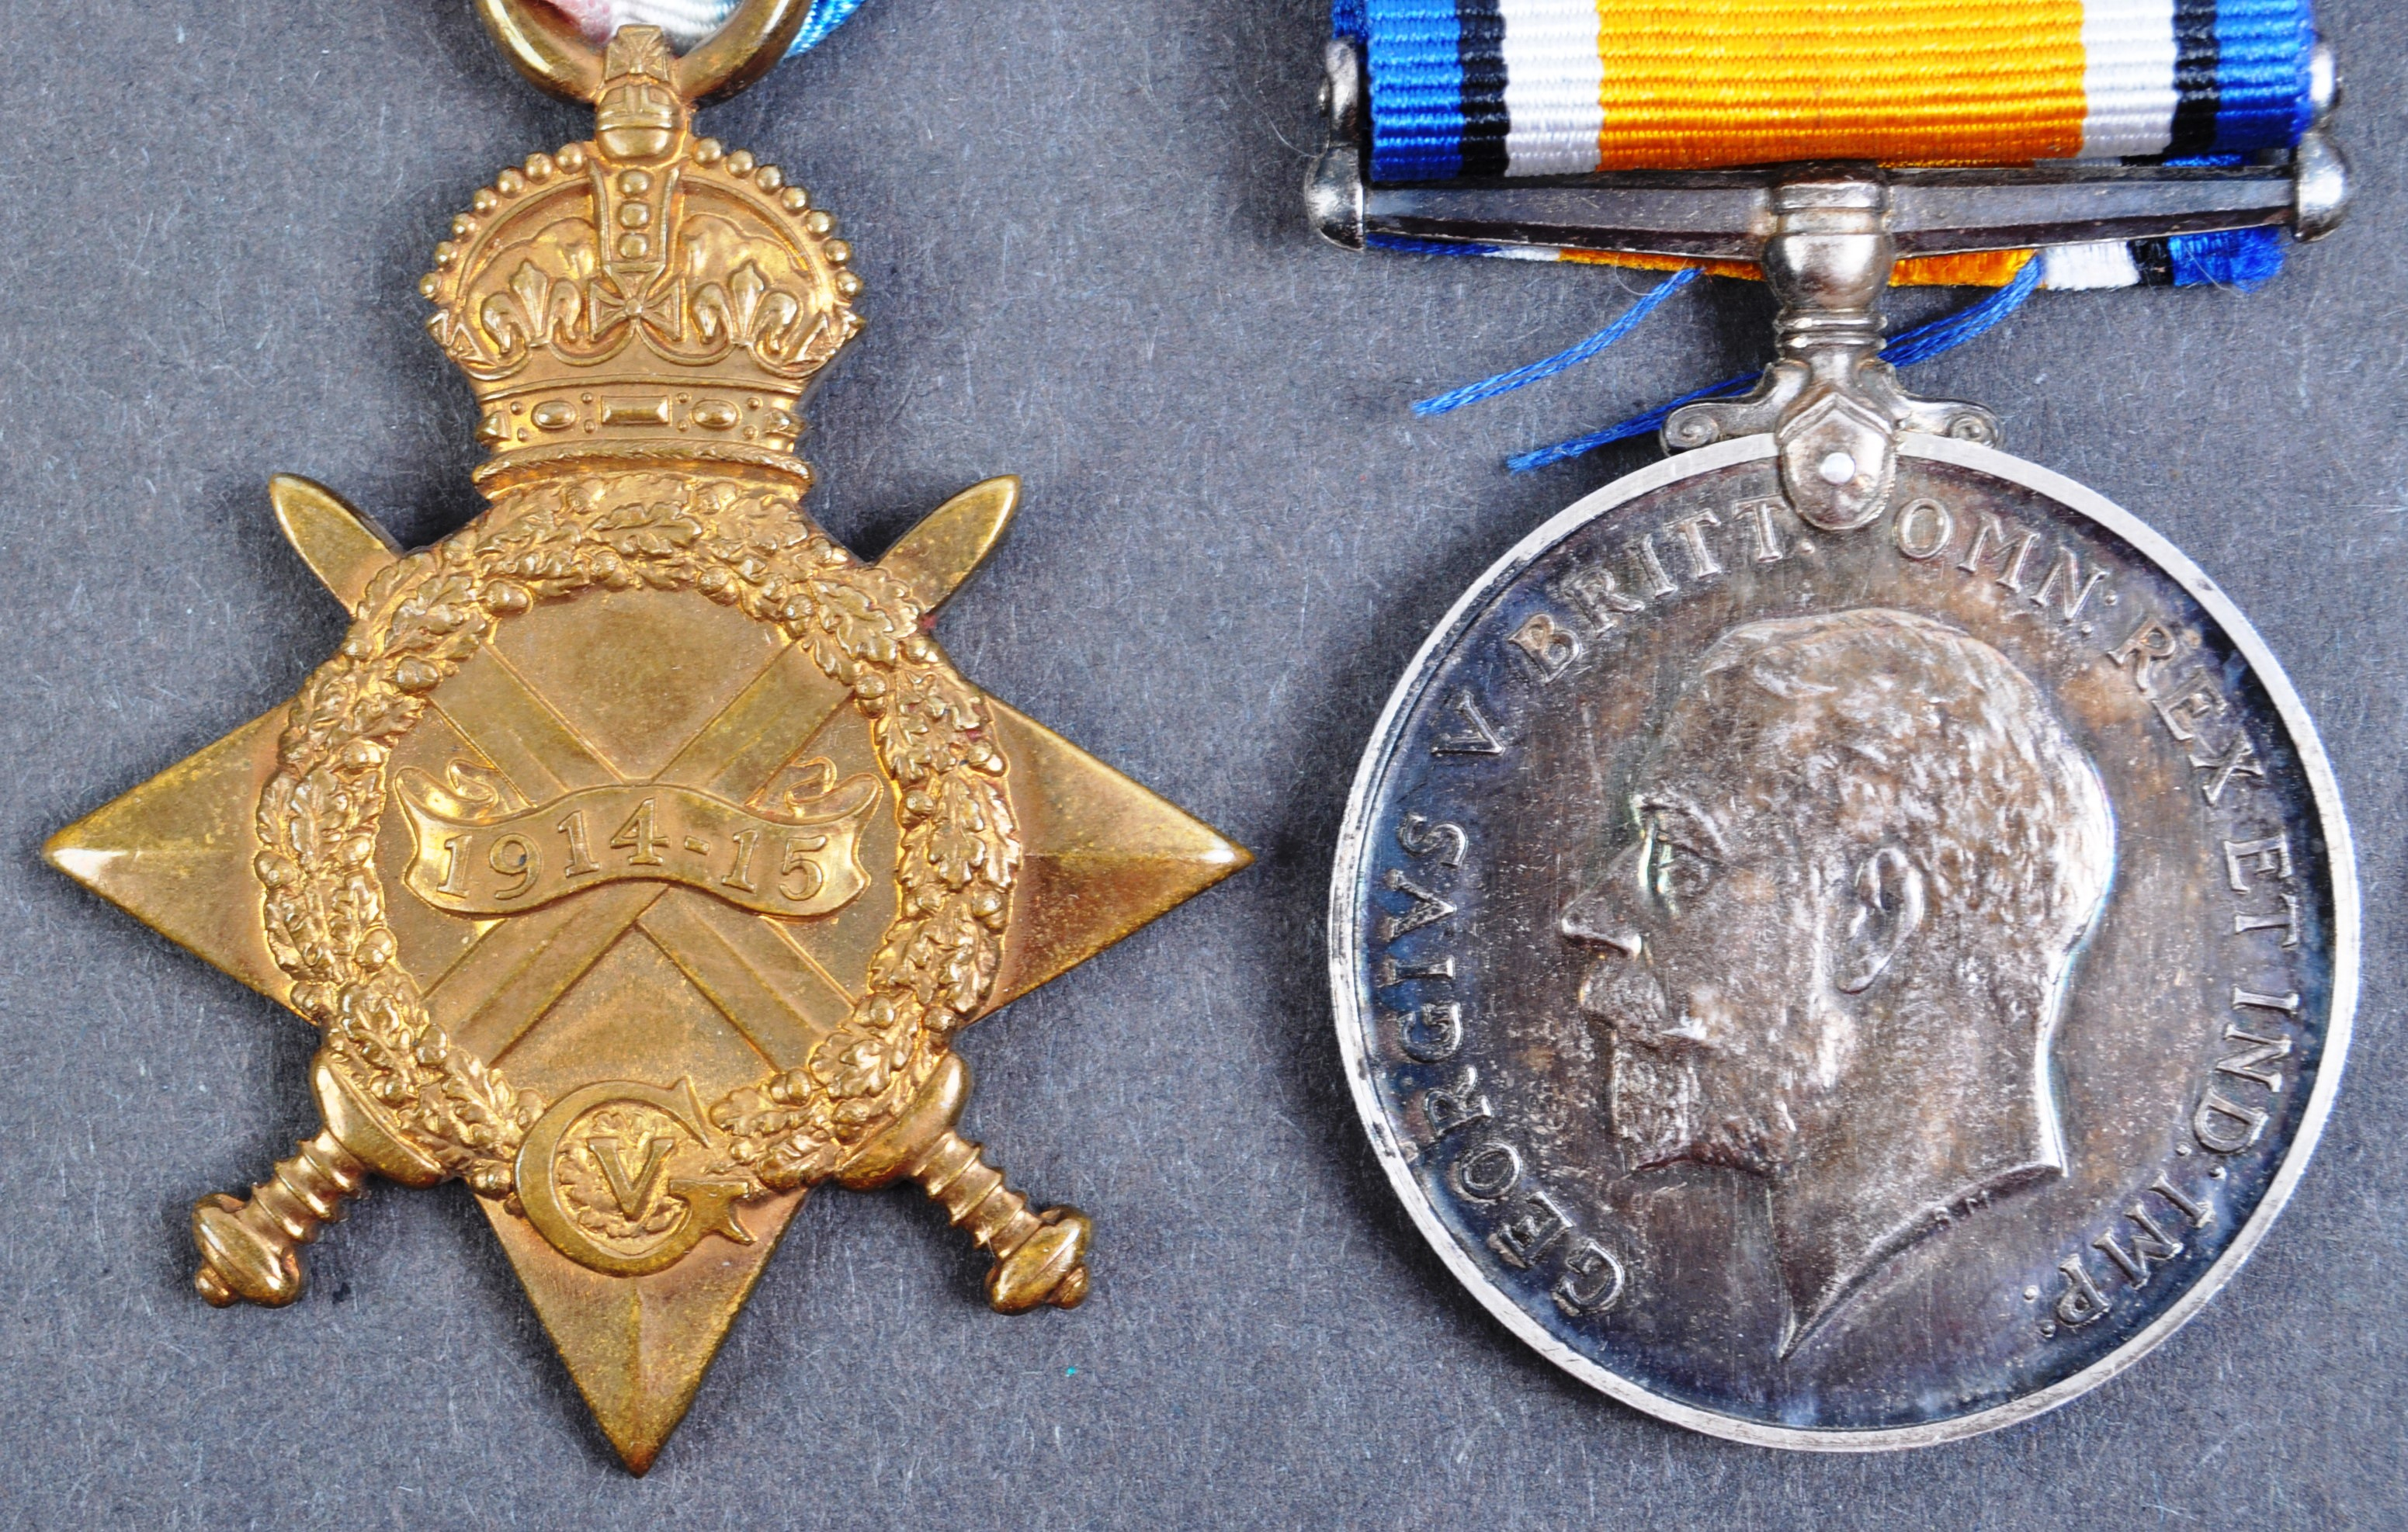 WWI & WWII INTEREST MEDAL GROUP - ACTING SERGEANT IN THE RAMC - Image 3 of 8